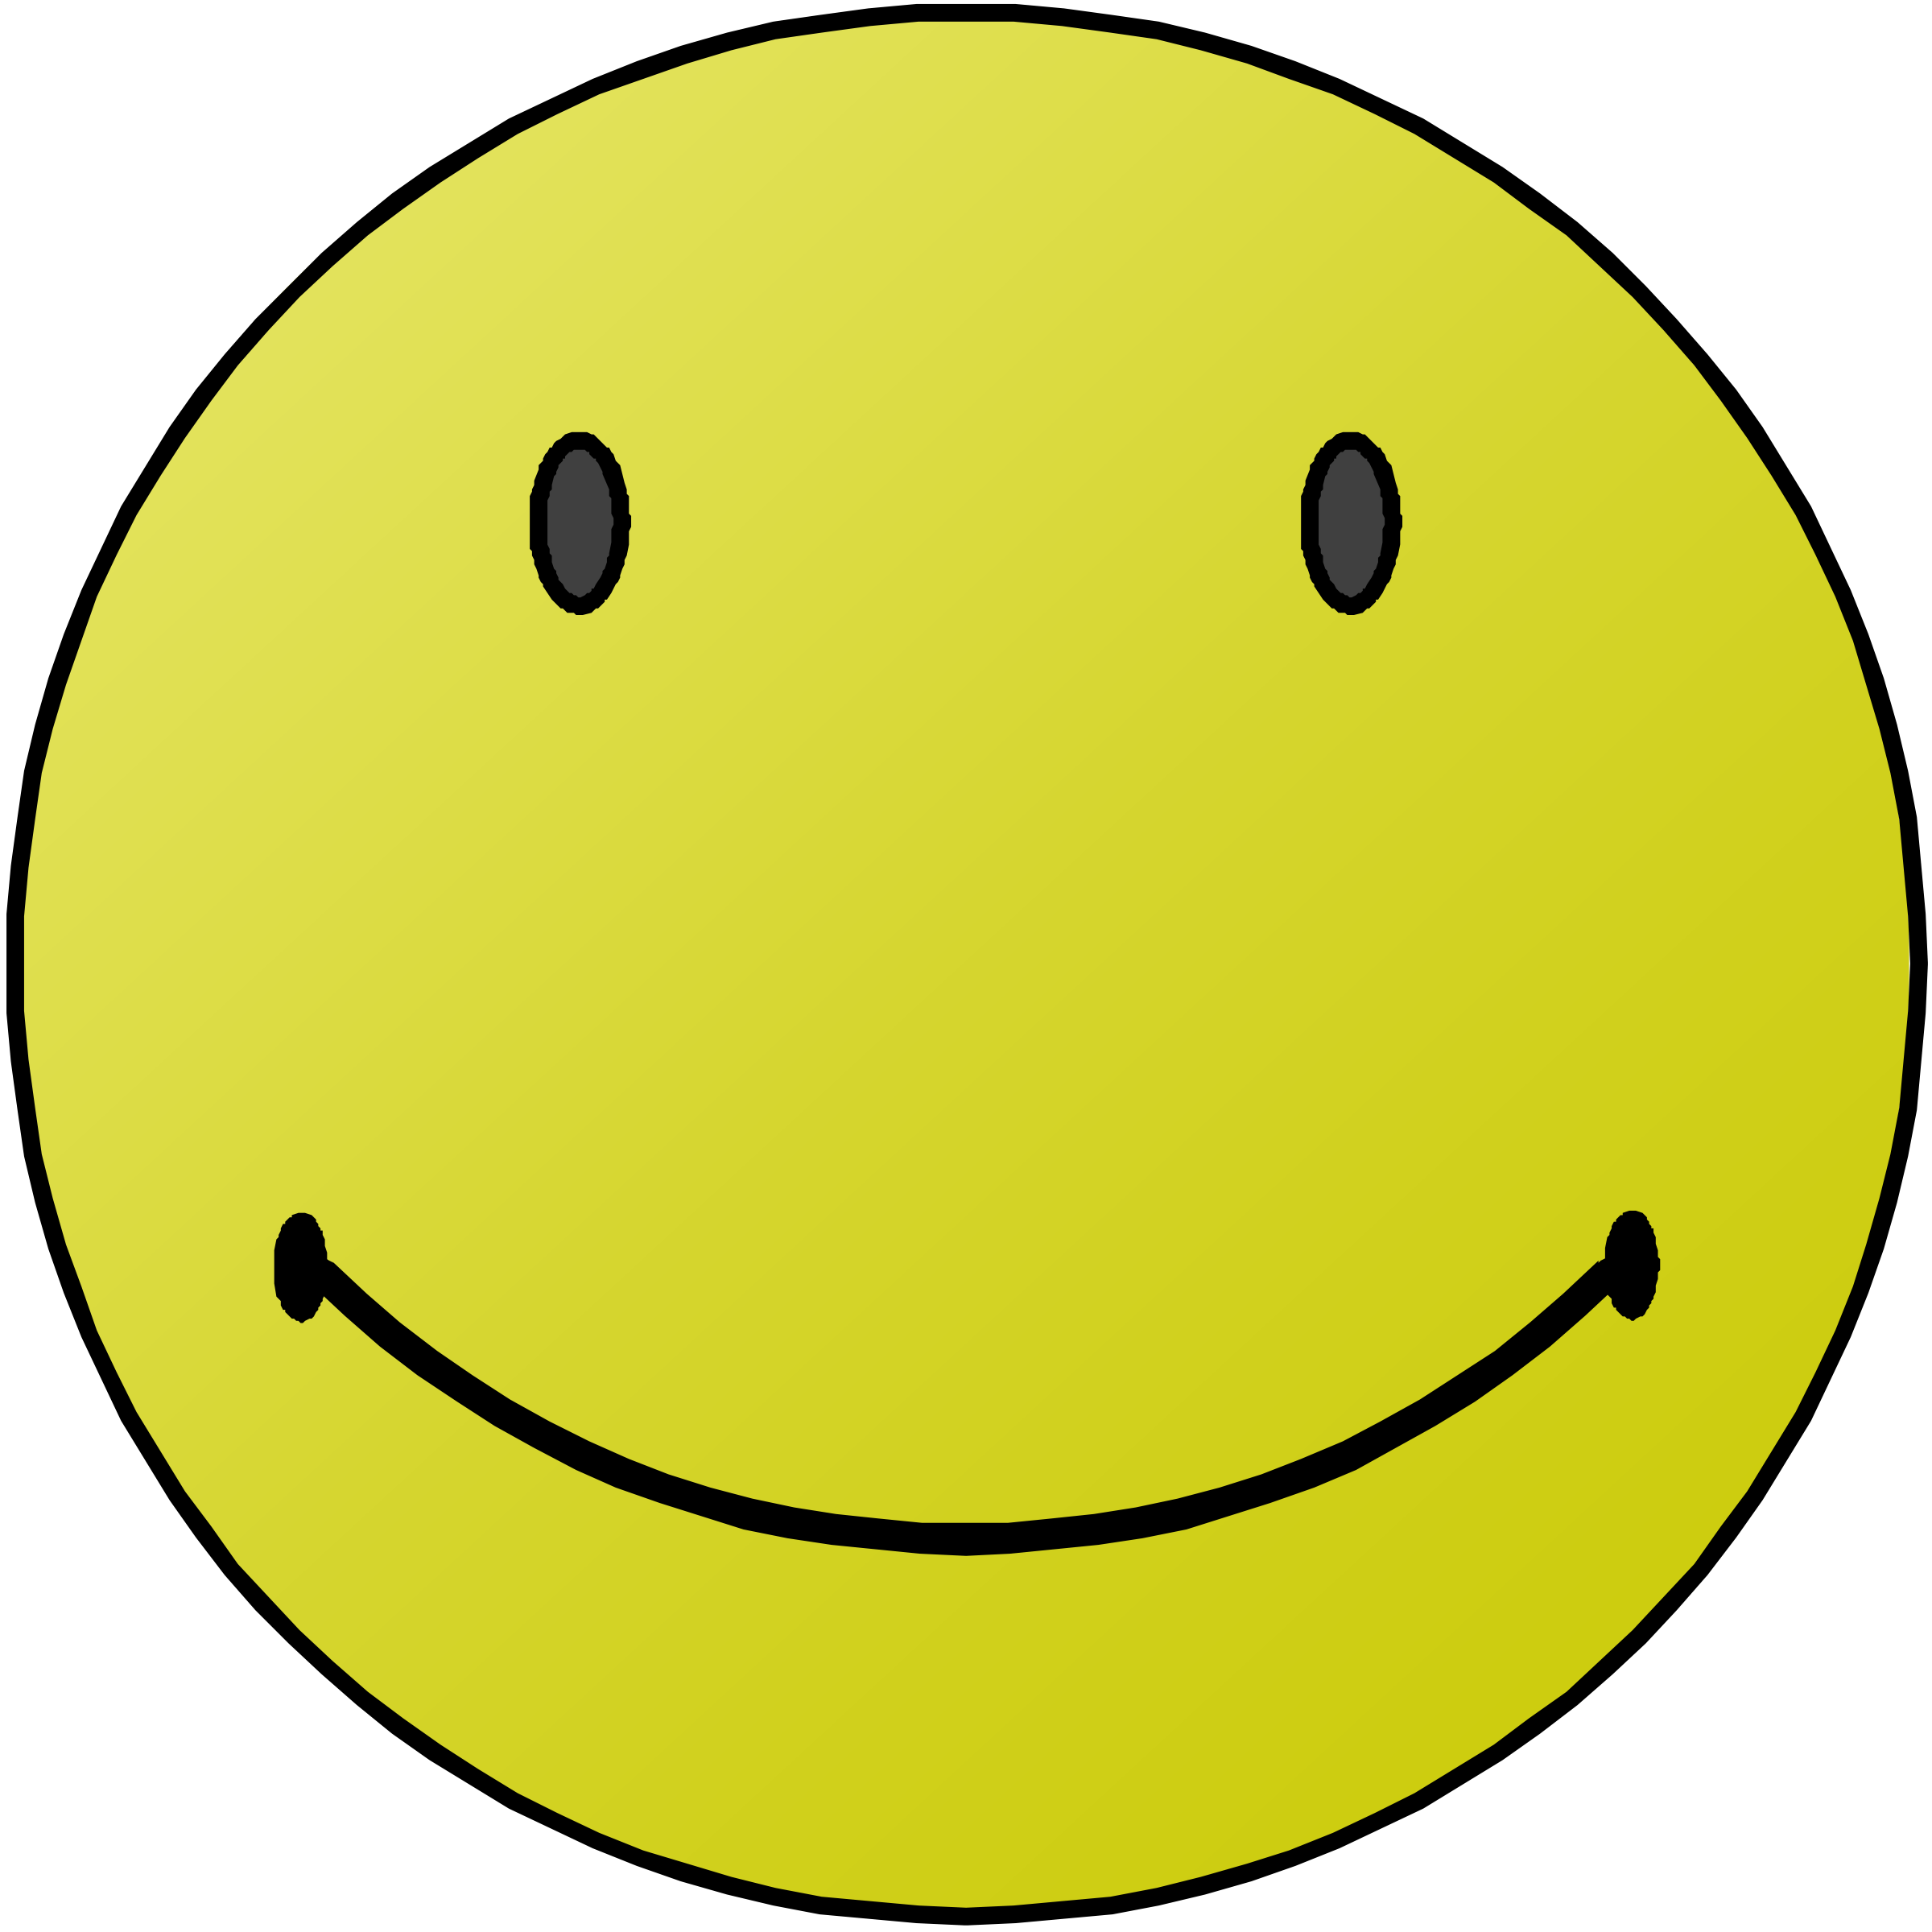 Small Smiley Face Clip Art - ClipArt Best - Free Small Smiley Face Clip Art